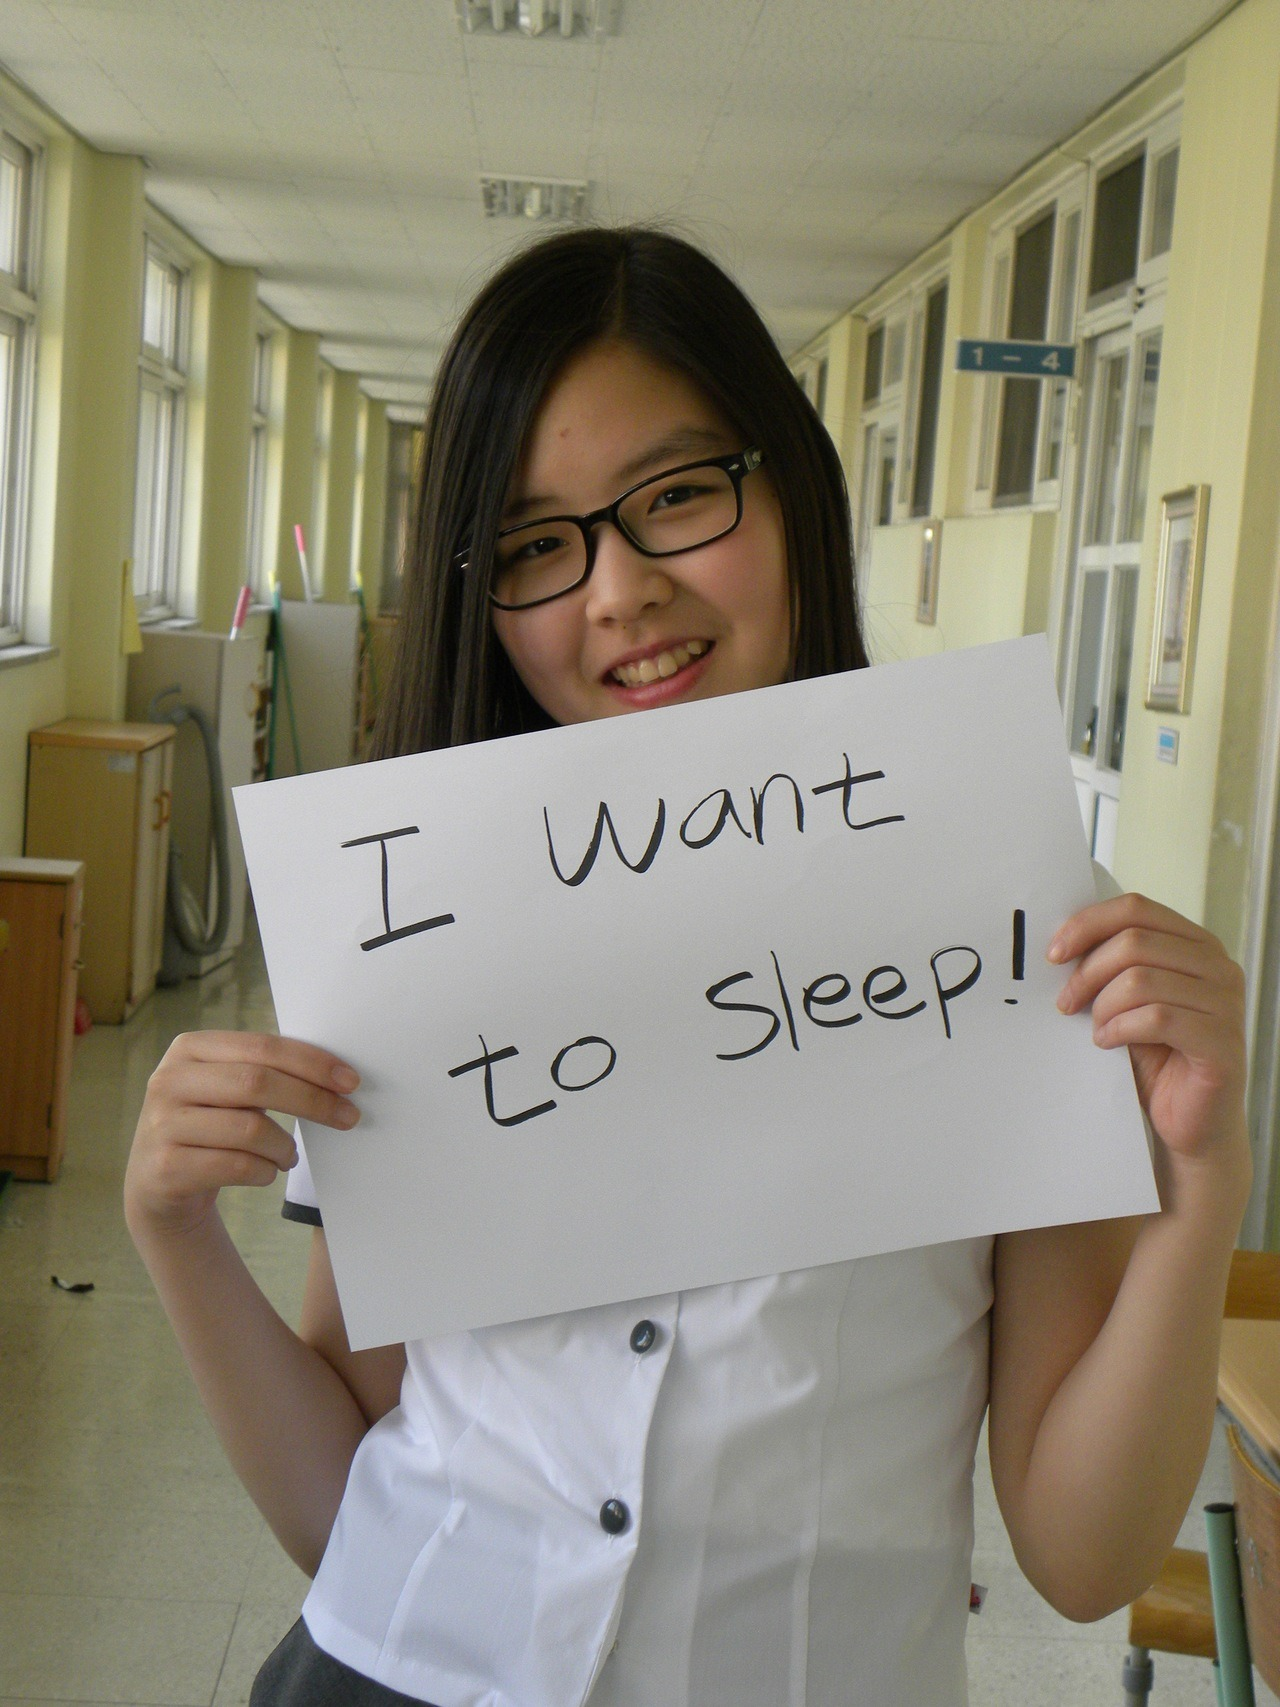 I want to sleep!